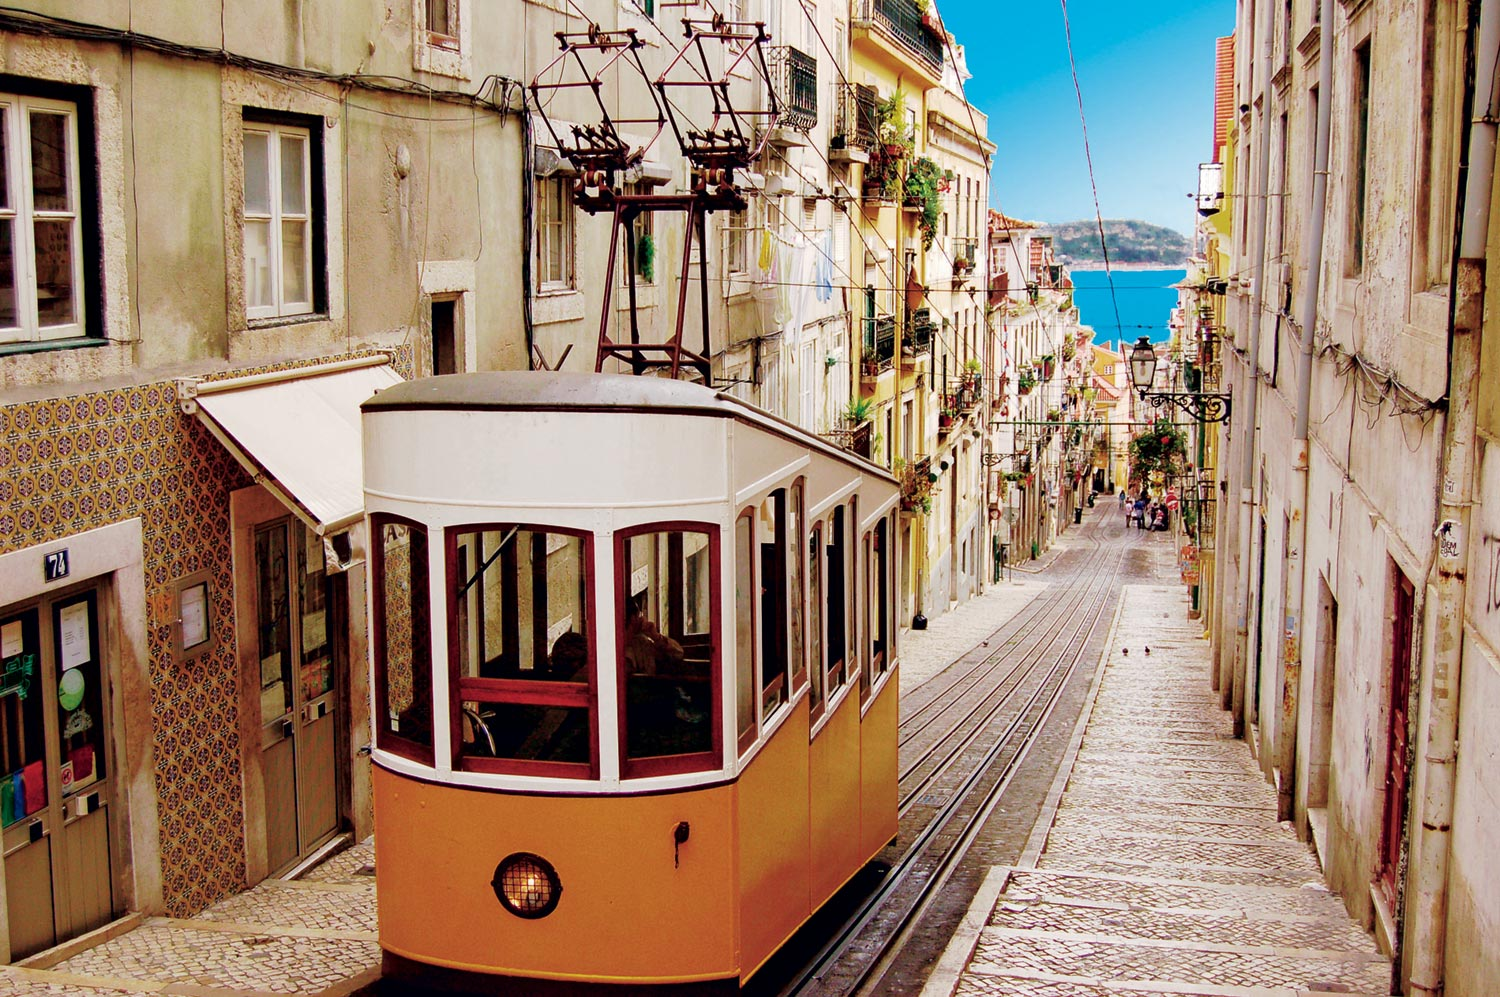 The capital city of Portugal is Lisbon.